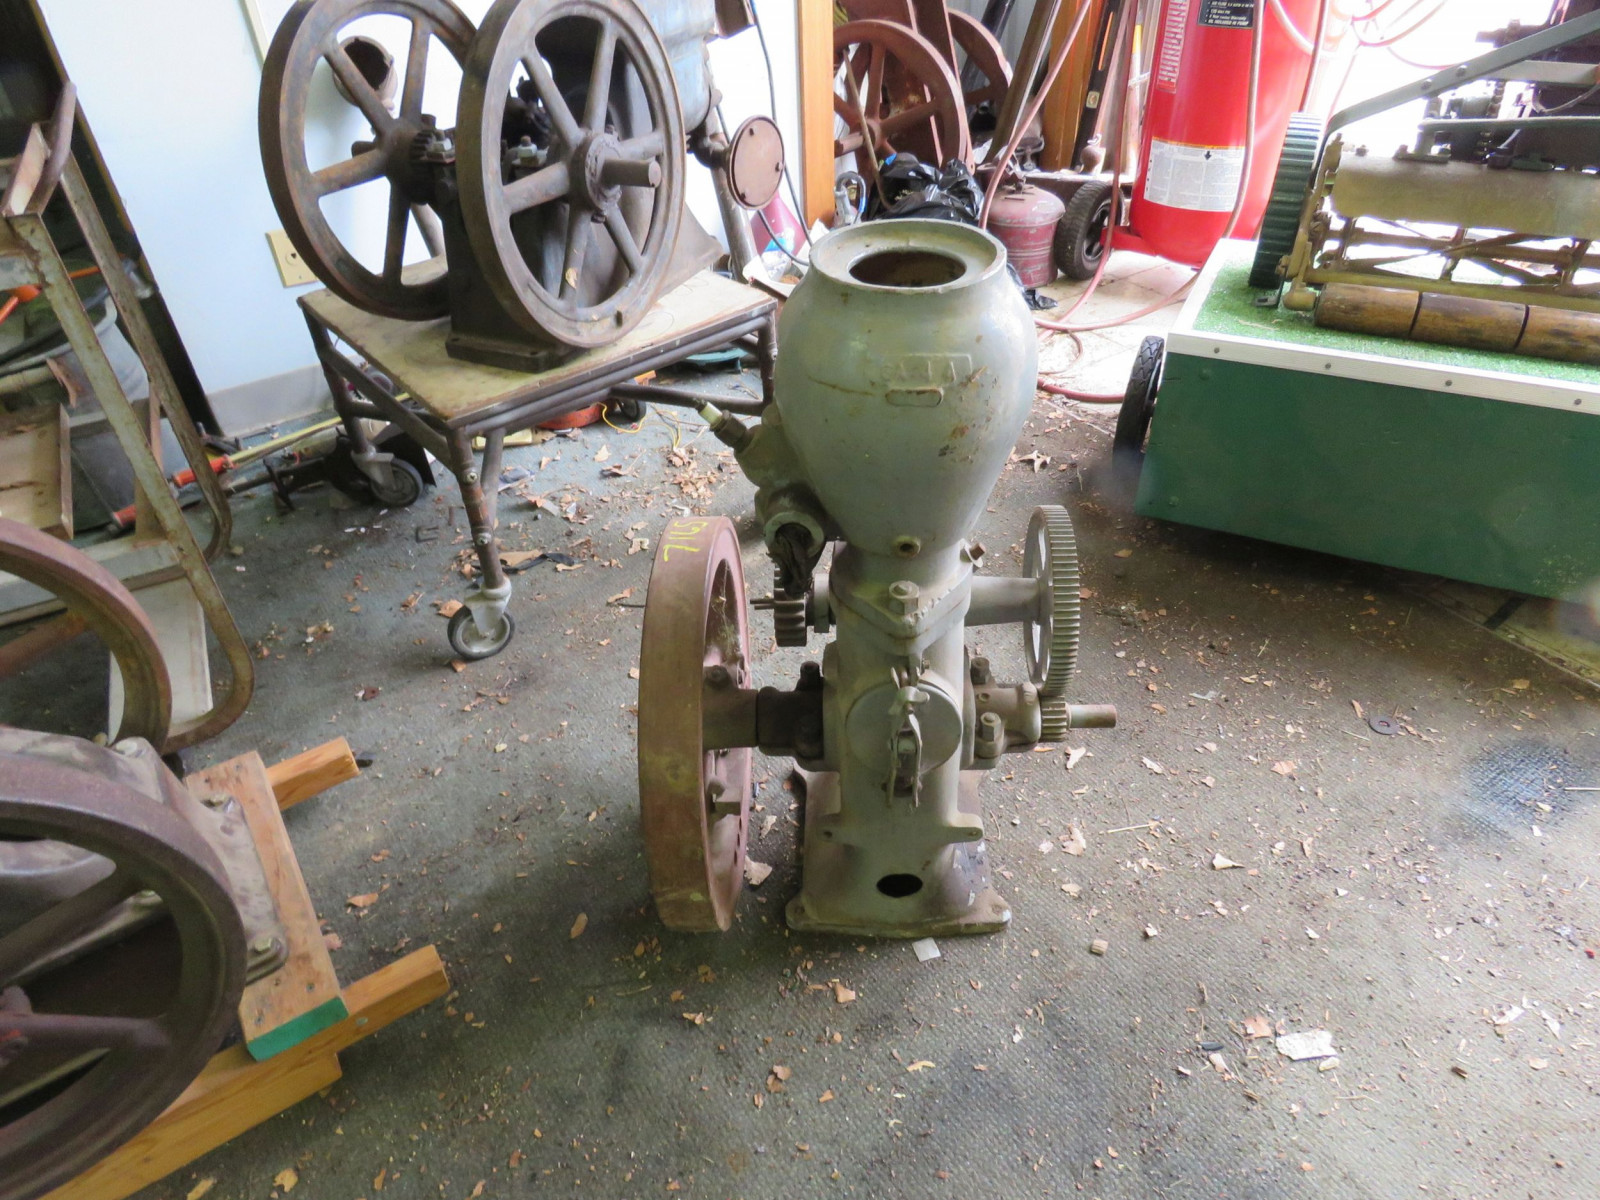 Upright Stationary Engine - Image 2